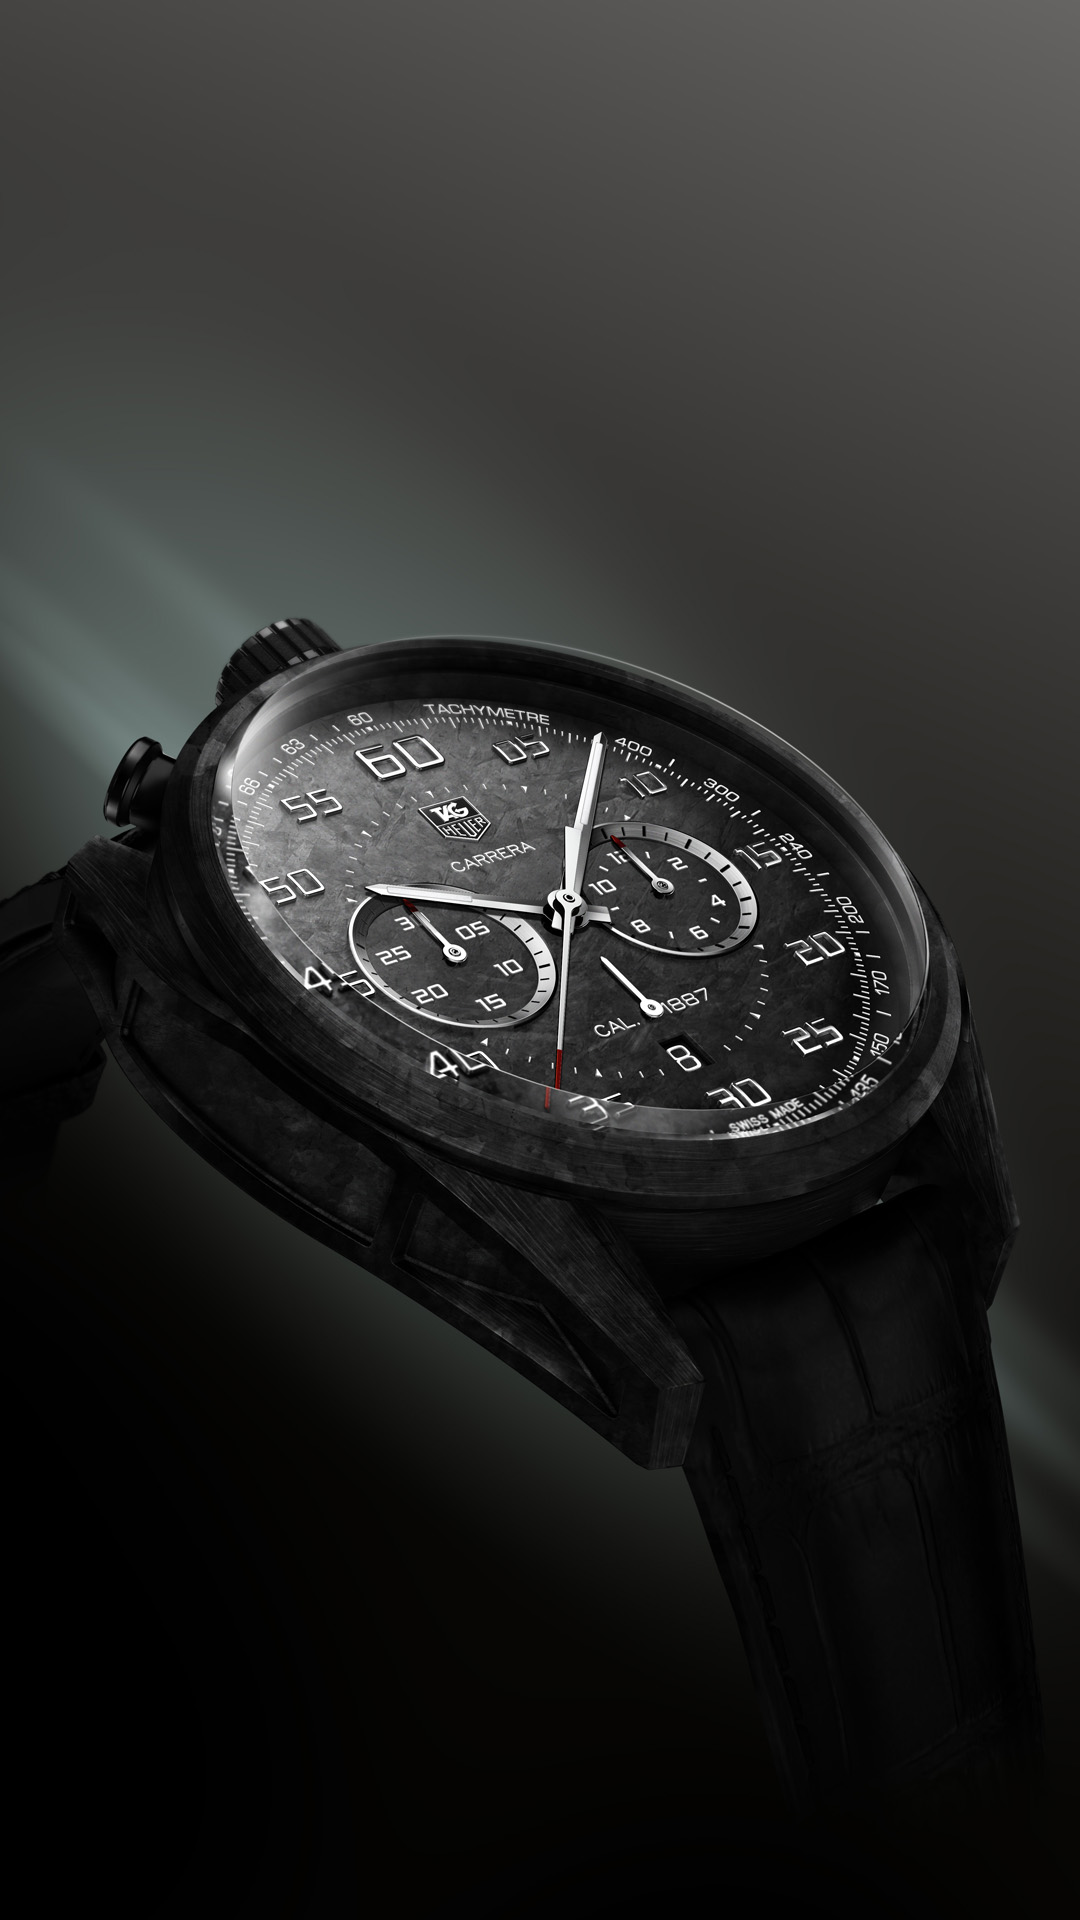 tag-heuer-carrera-angle-android-wallpaper